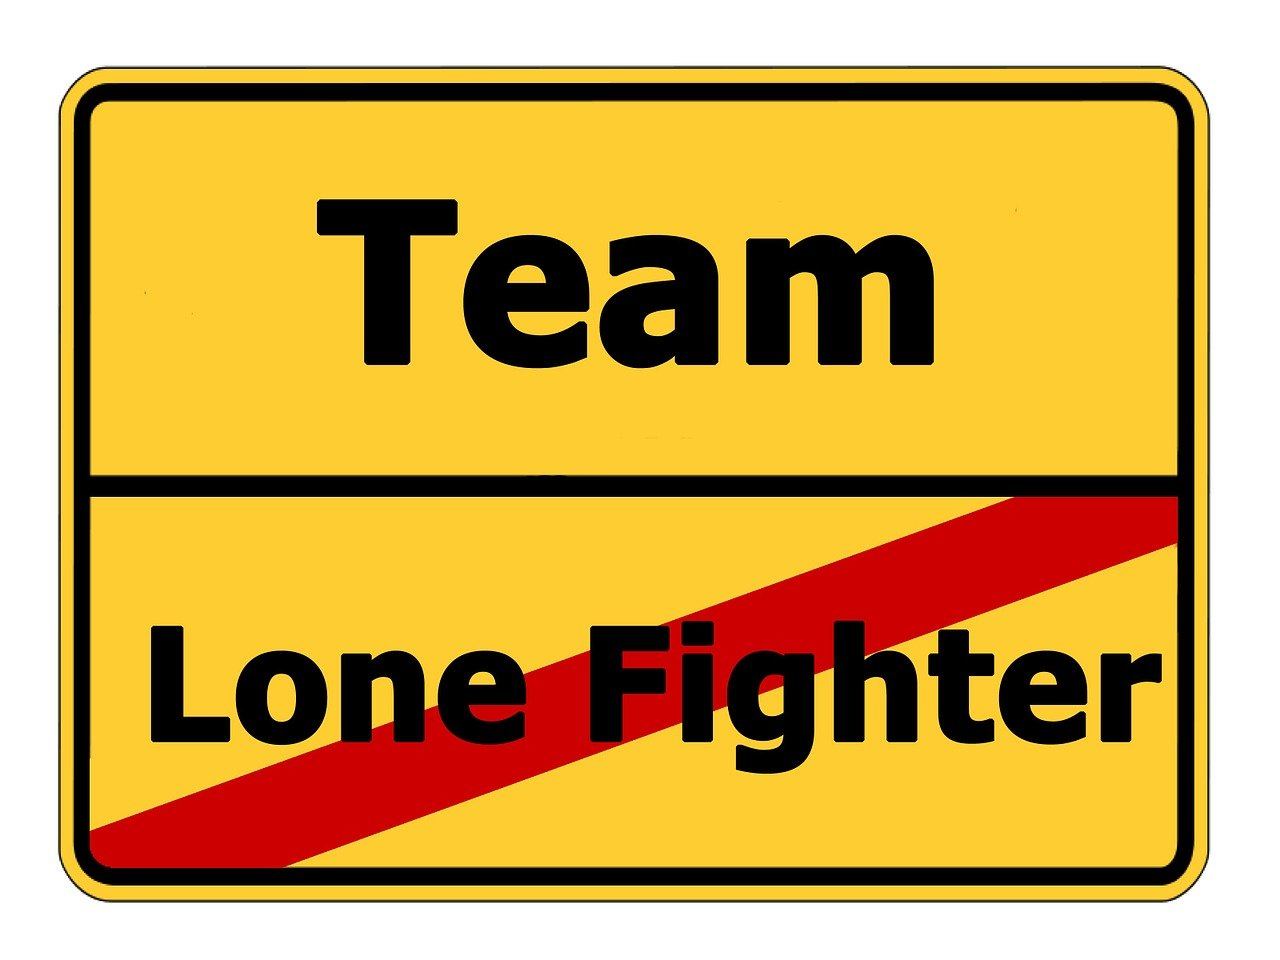 team, lone, town sign